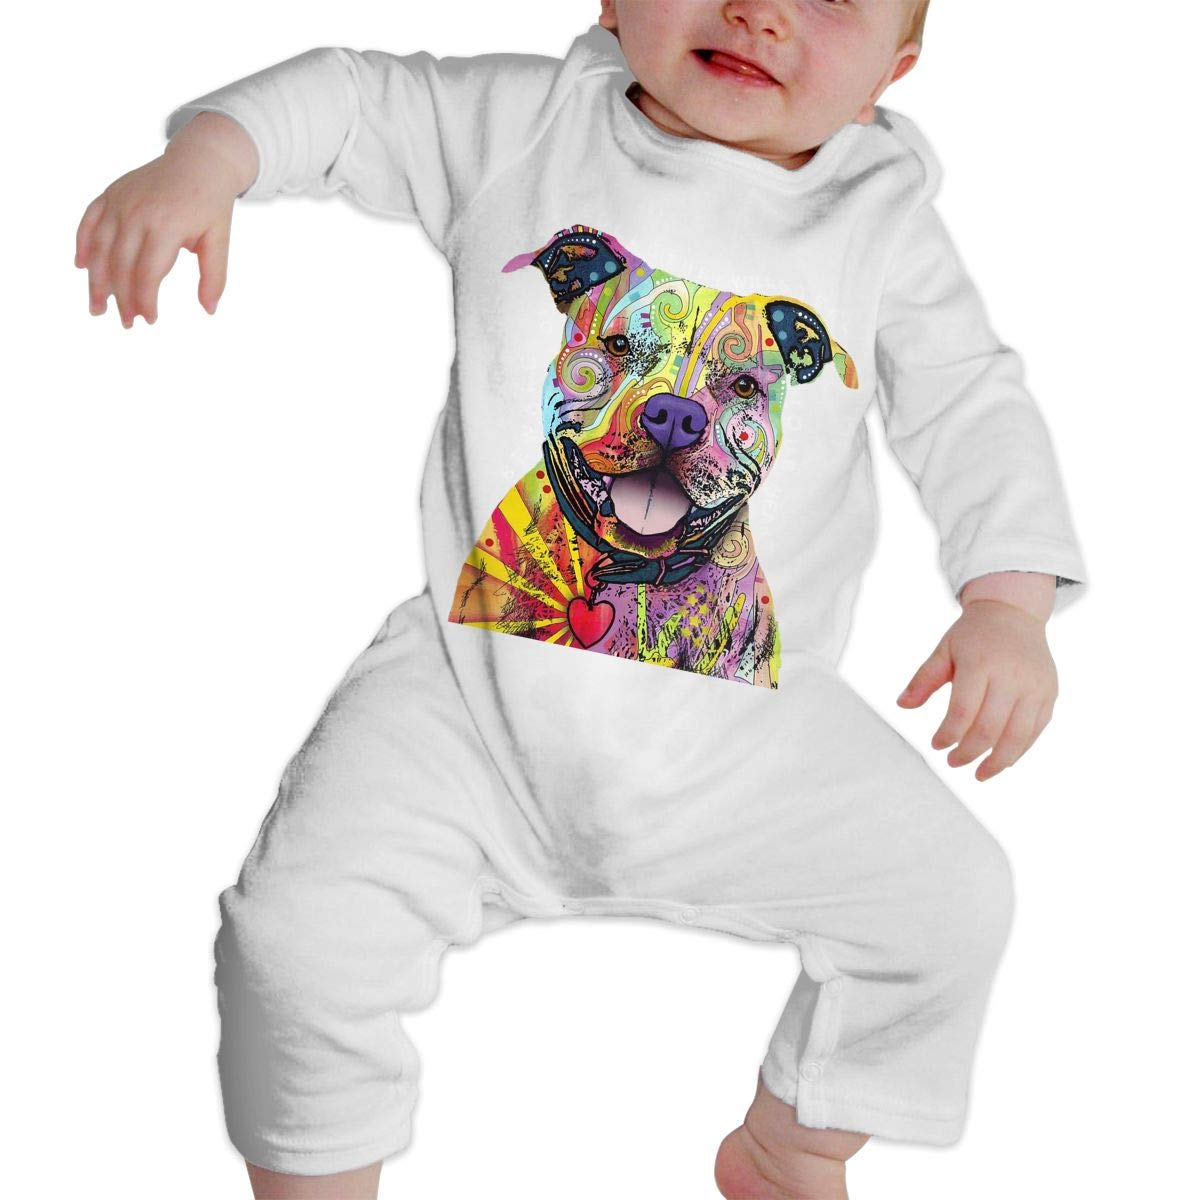 OH Fox Sake Unisex Long Sleeve Baby Gown Baby Bodysuit Unionsuit Footed Pajamas Romper Jumpsuit